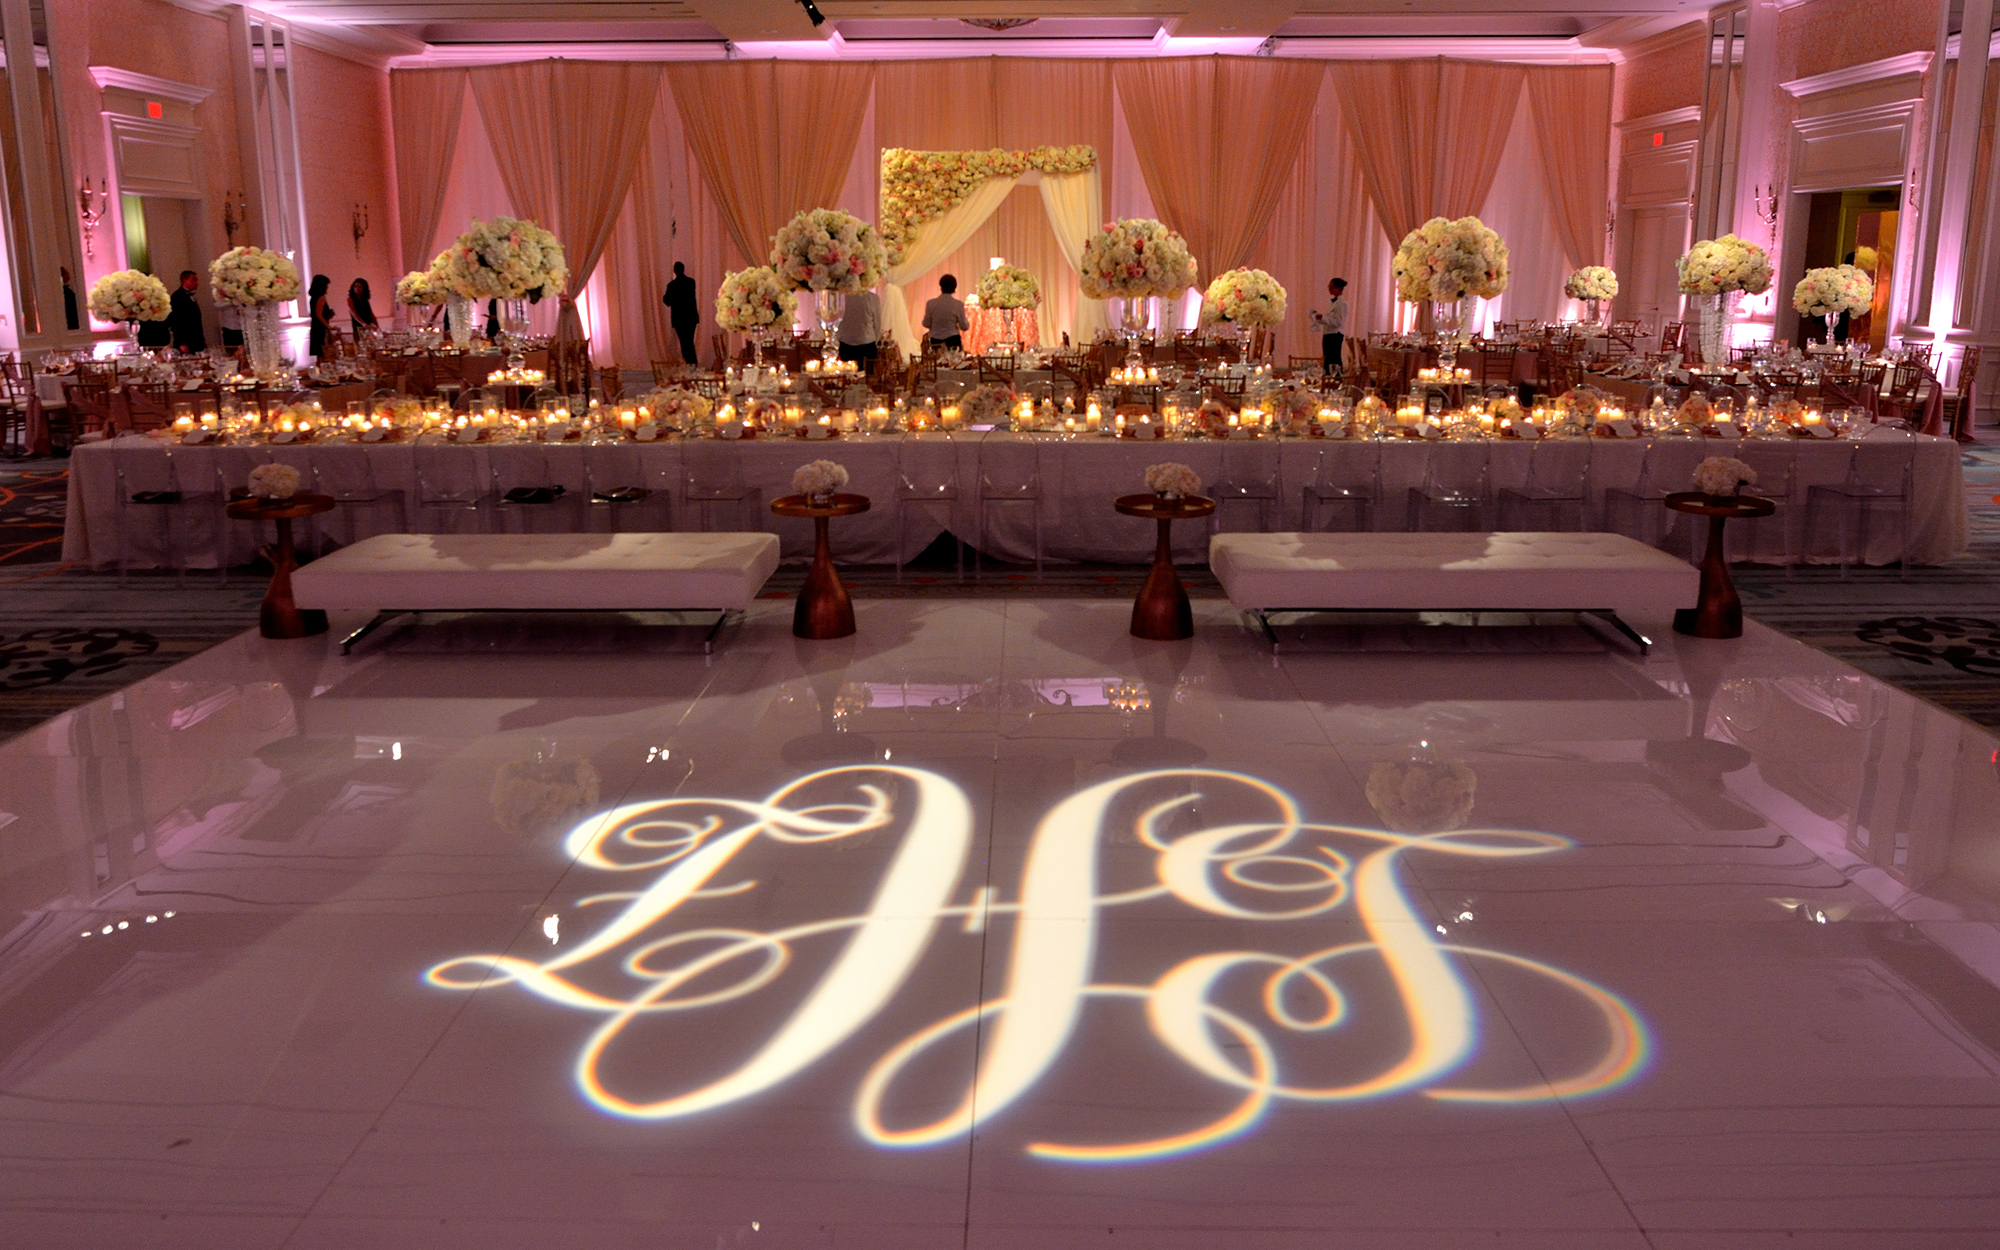 Gobo Projected onto Dance Floor at The Four Seasons Las Colinas